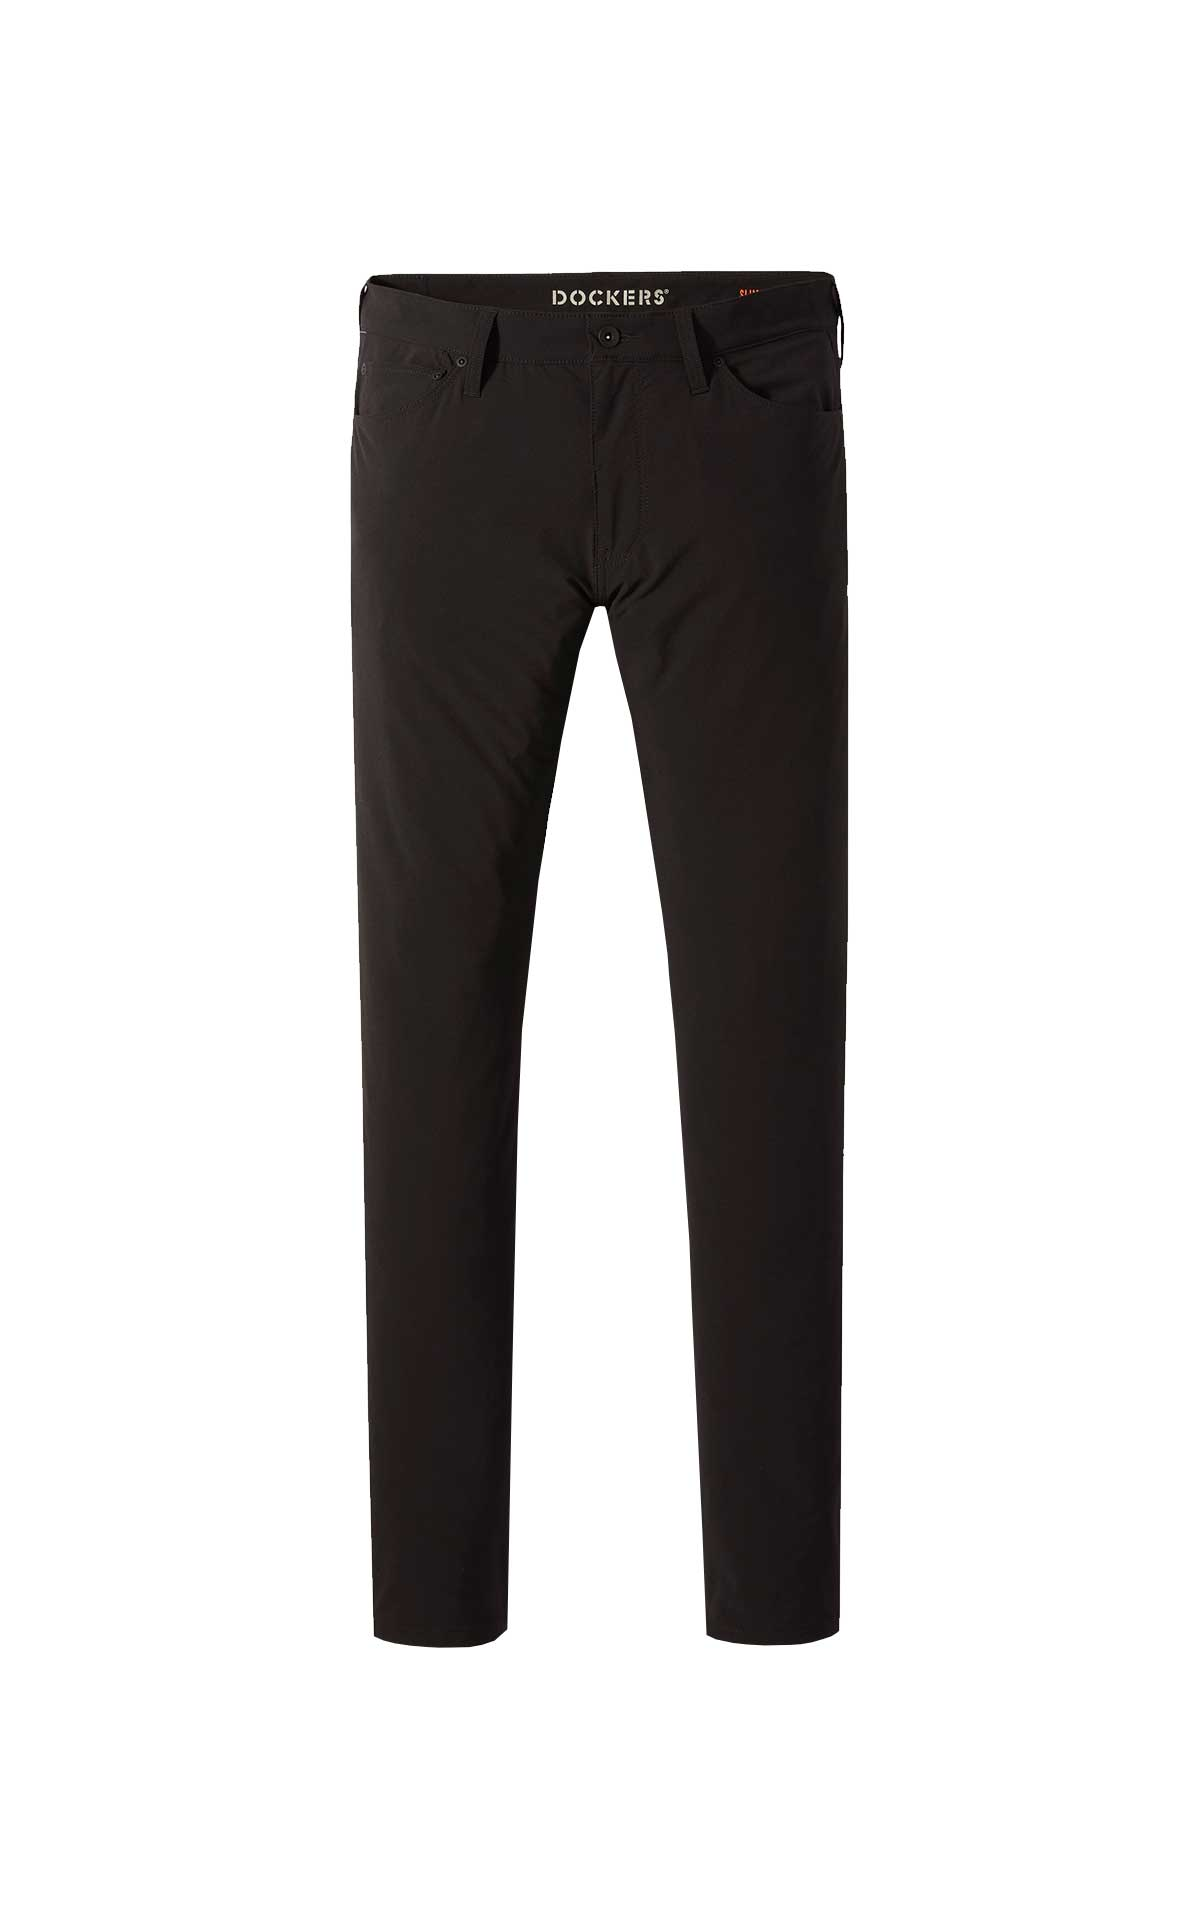 Black chino trousers for man Dockers